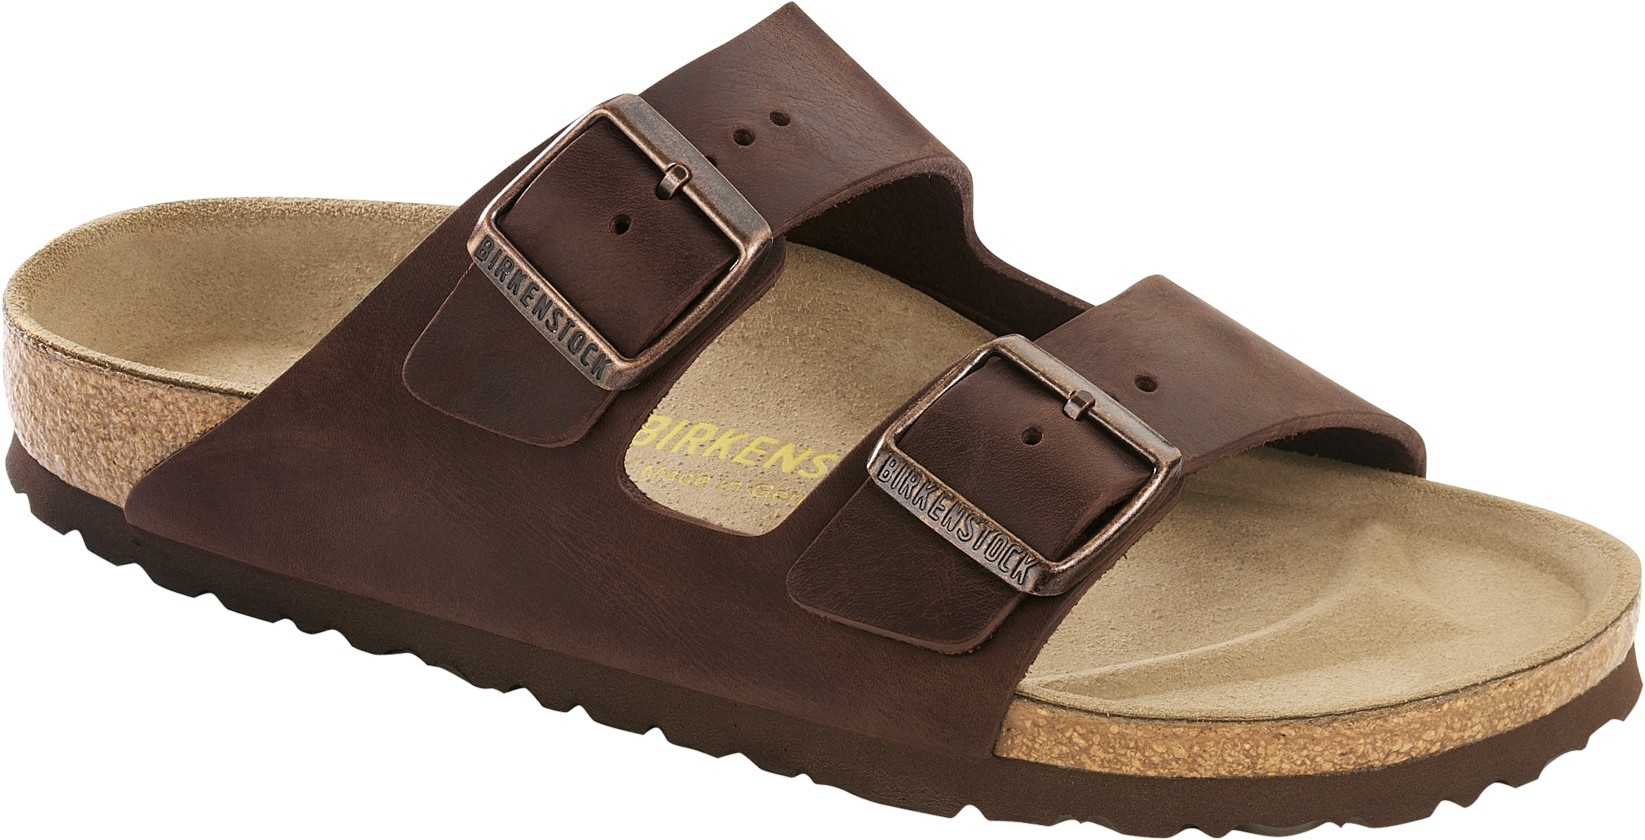 52531 Birkenstock Arizona Habana Oiled